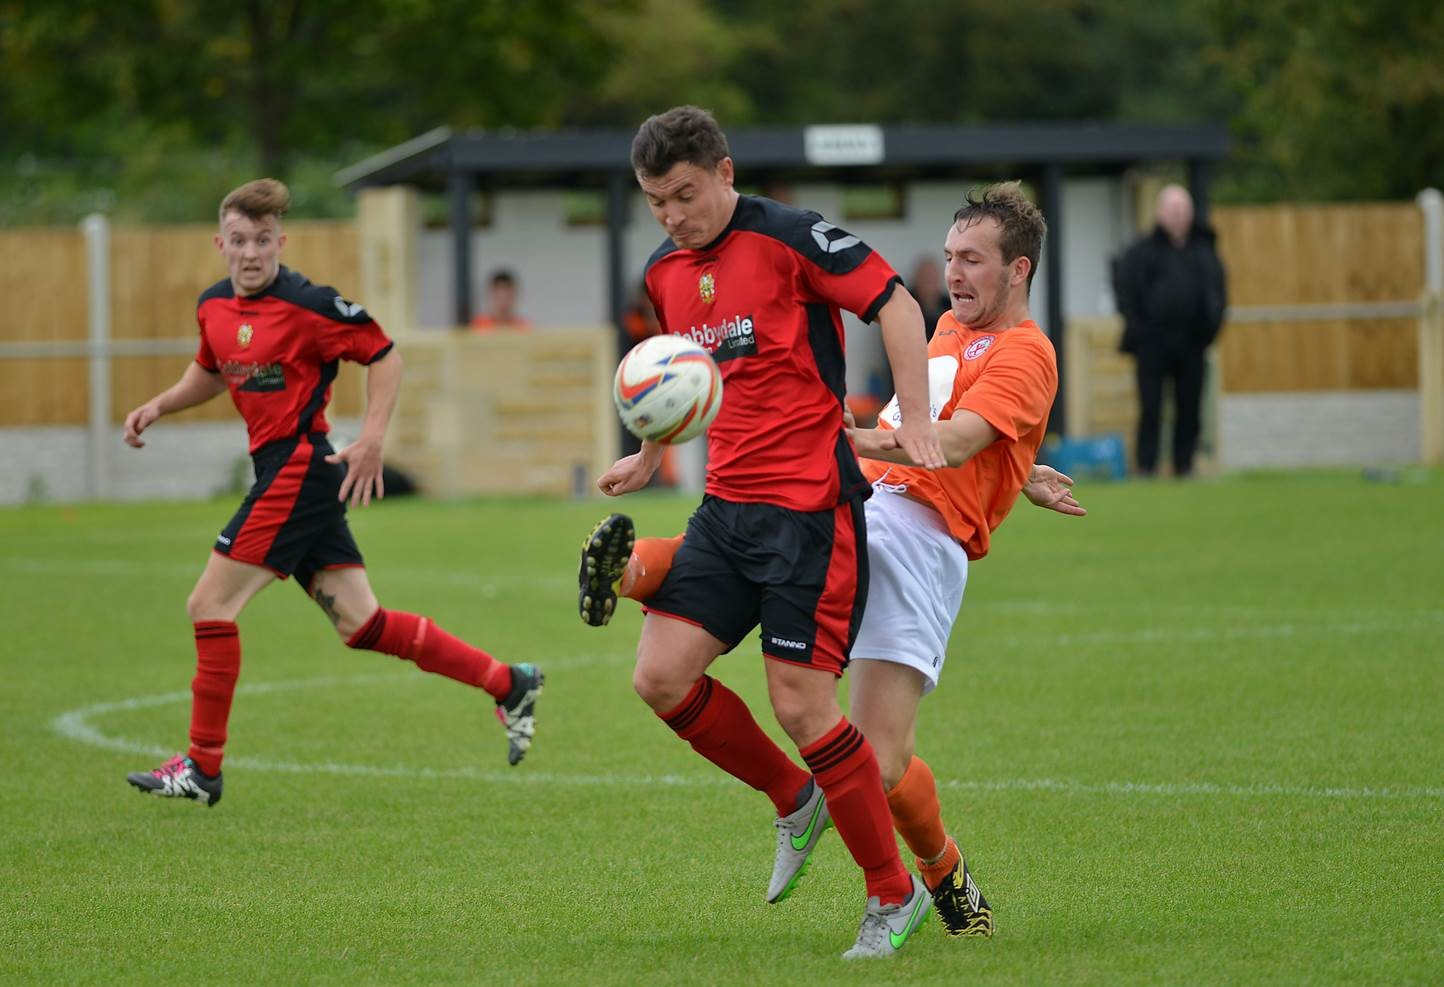 Player-manager Danny Forrest put Silsden ahead with 15 minutes left